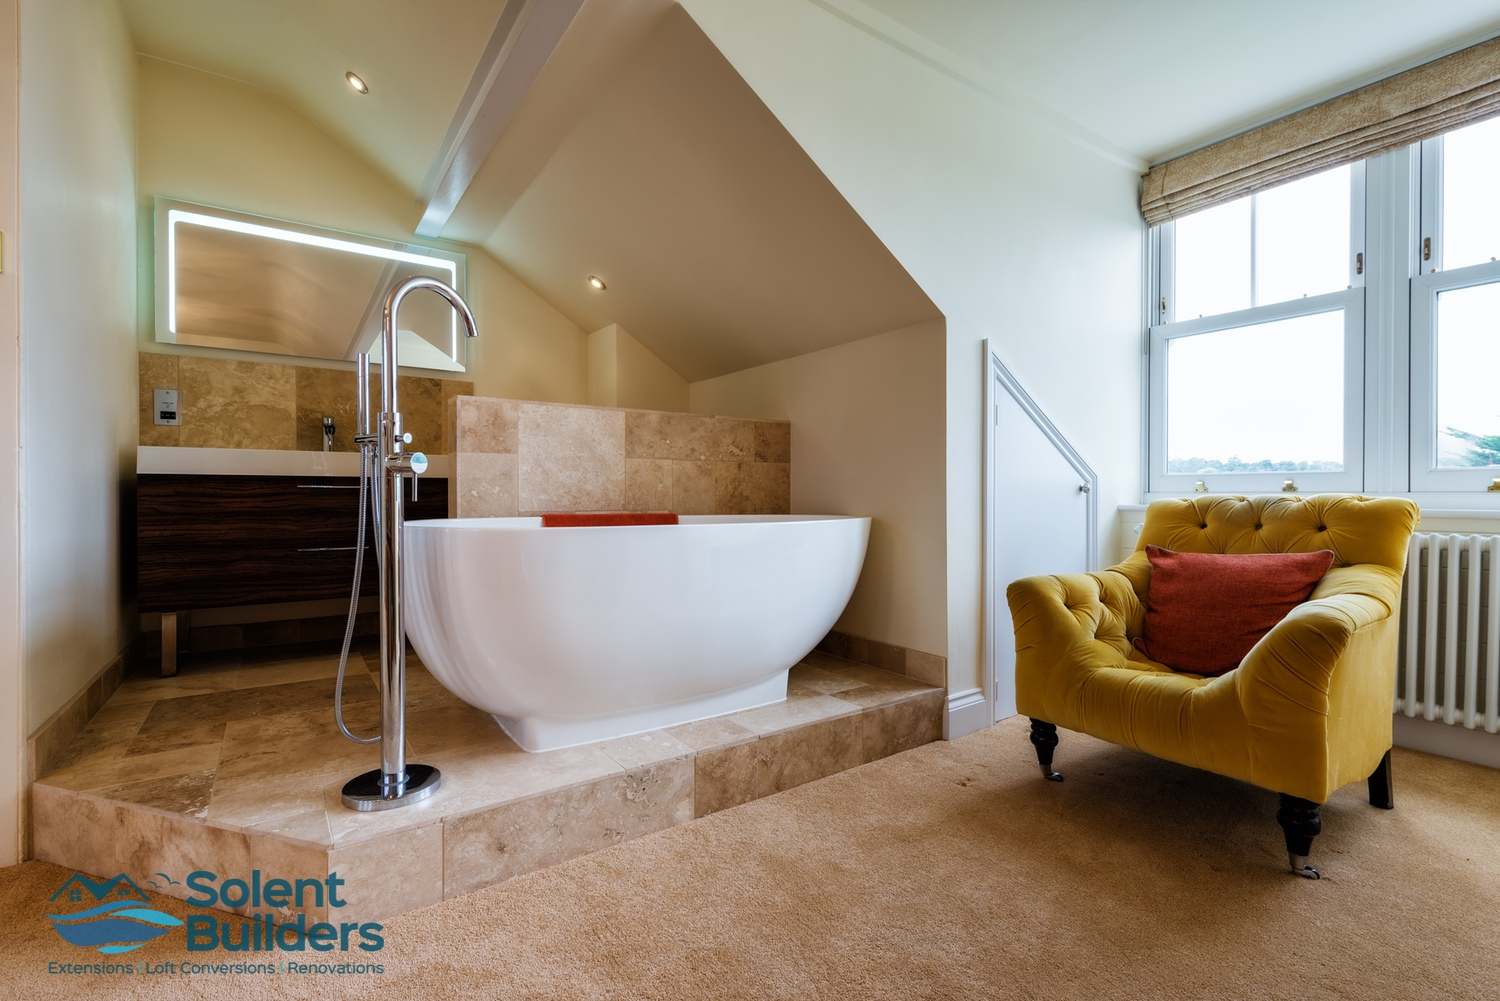 Bathroom Fitters, Fareham